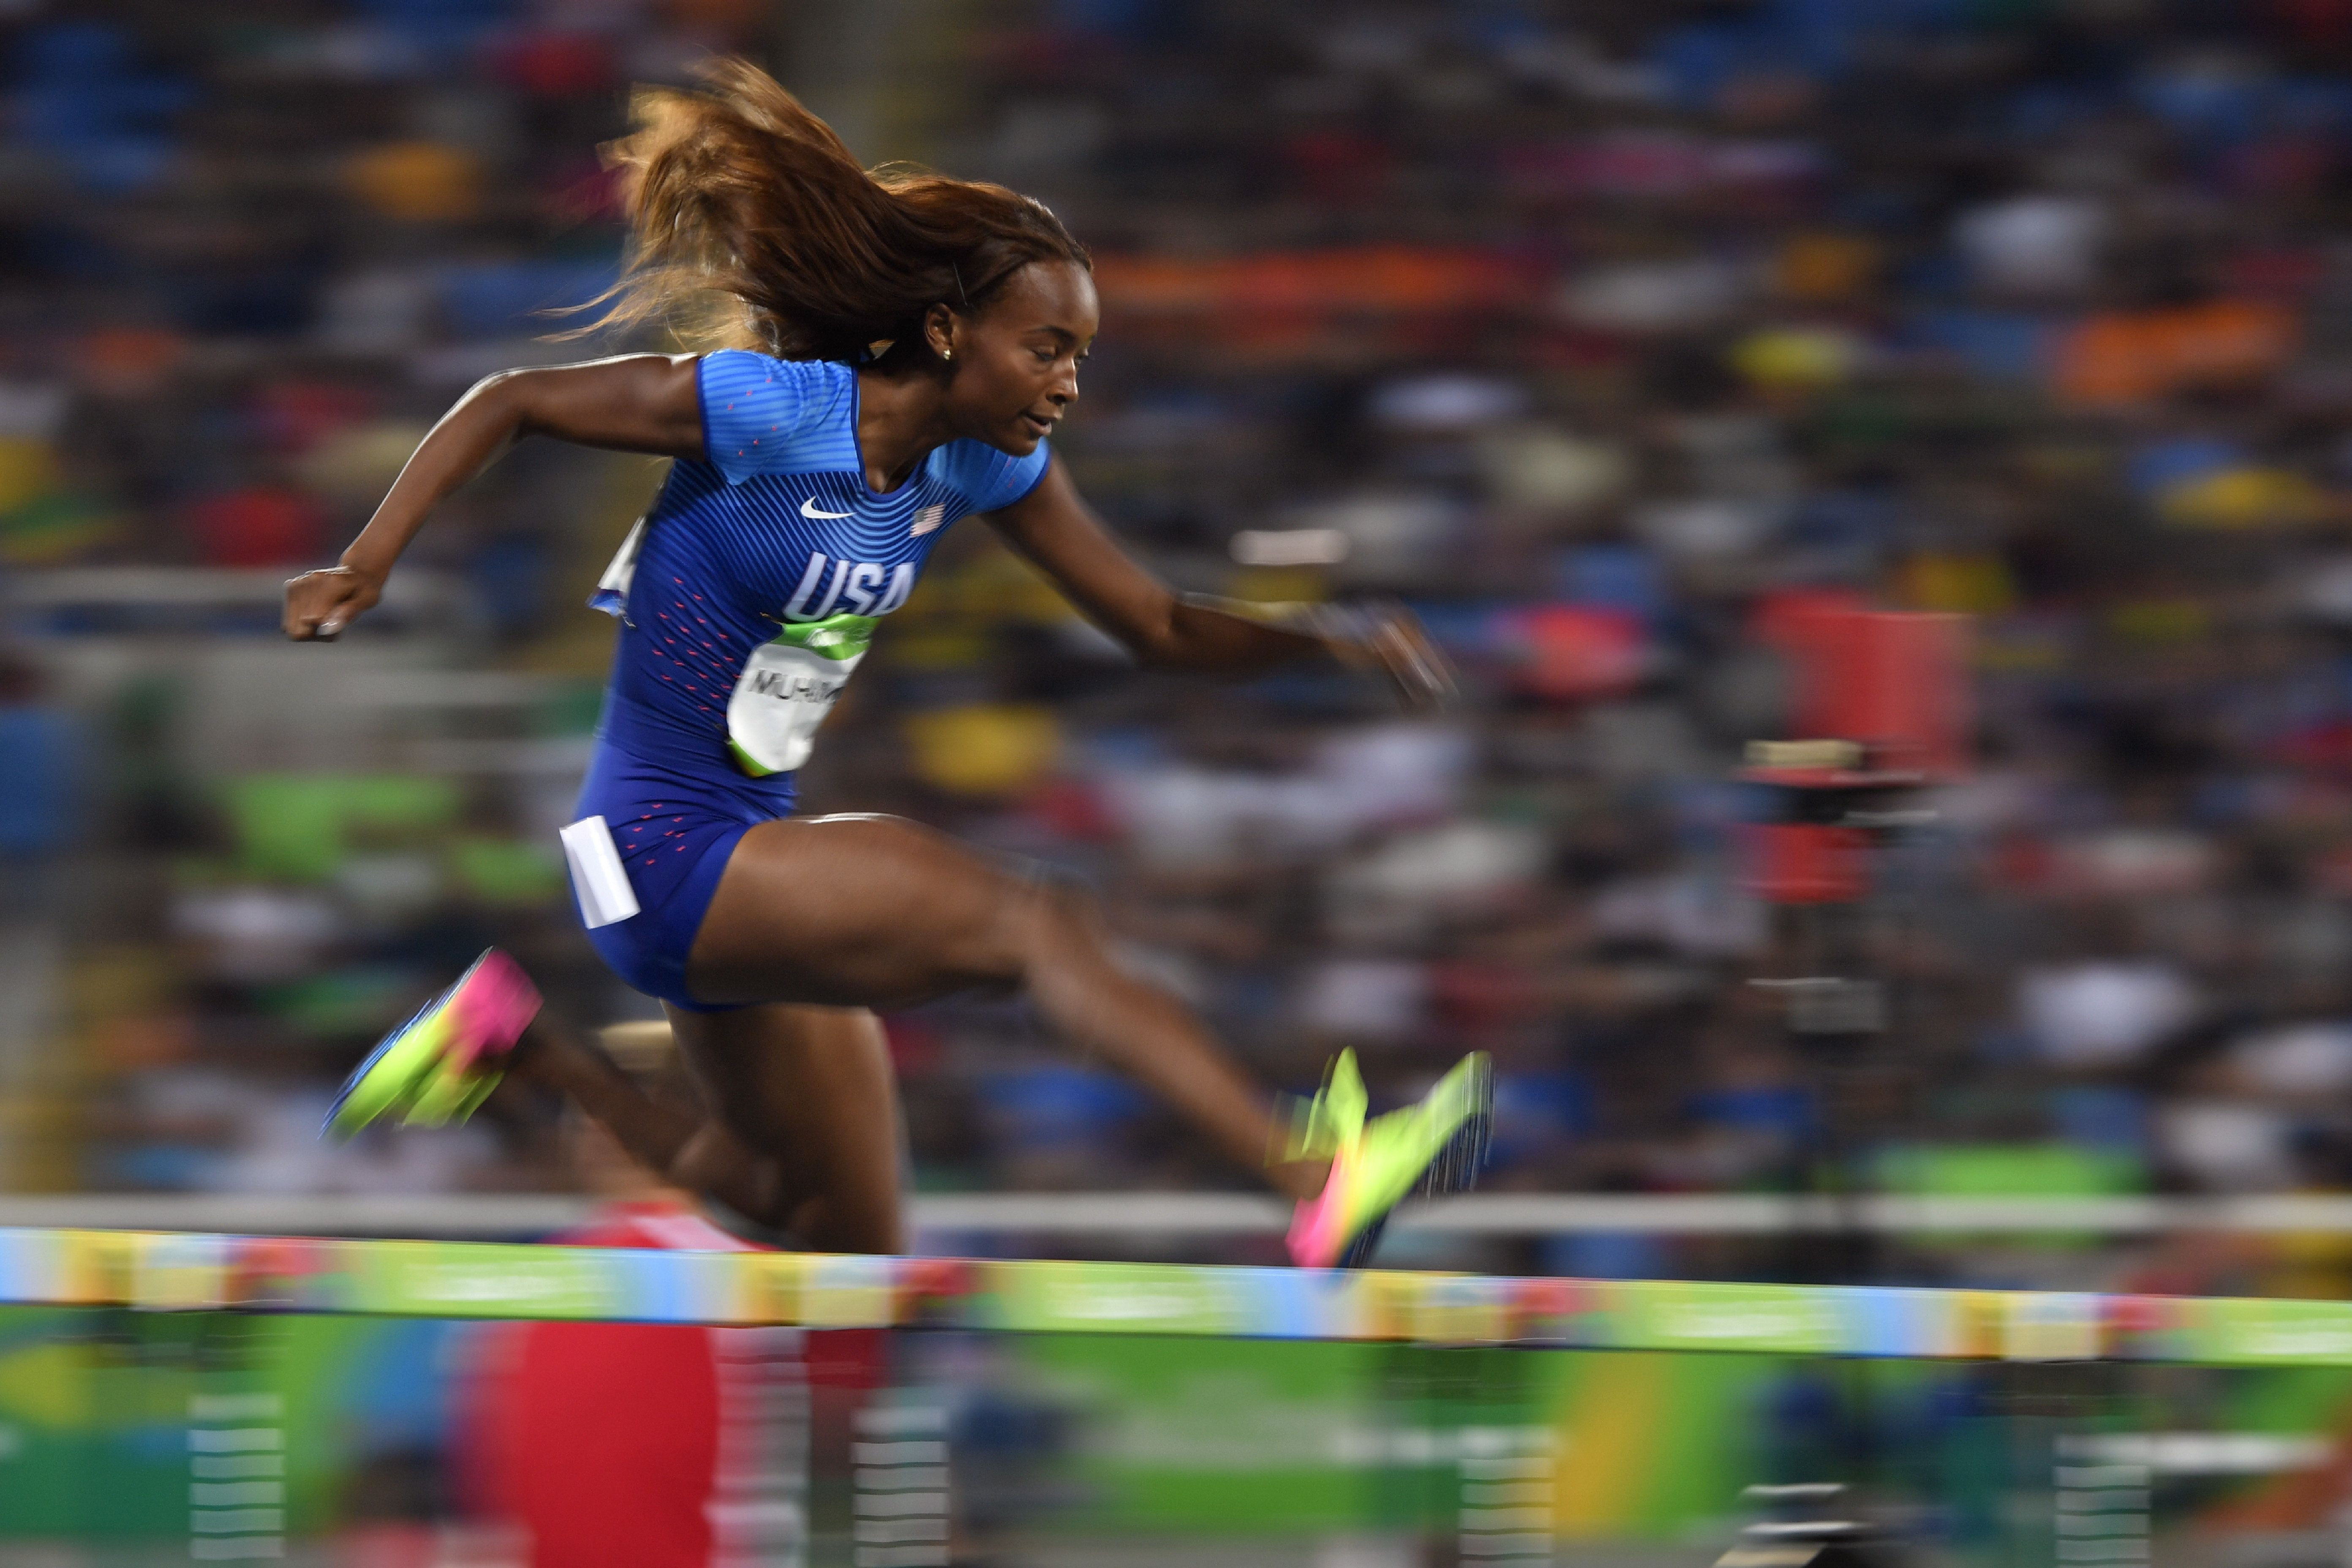 USA's Dalilah Muhammad competes in the Women's 400m Hurdles Semifinal at the Rio 2016 Olympic Games in Rio de Janeiro.